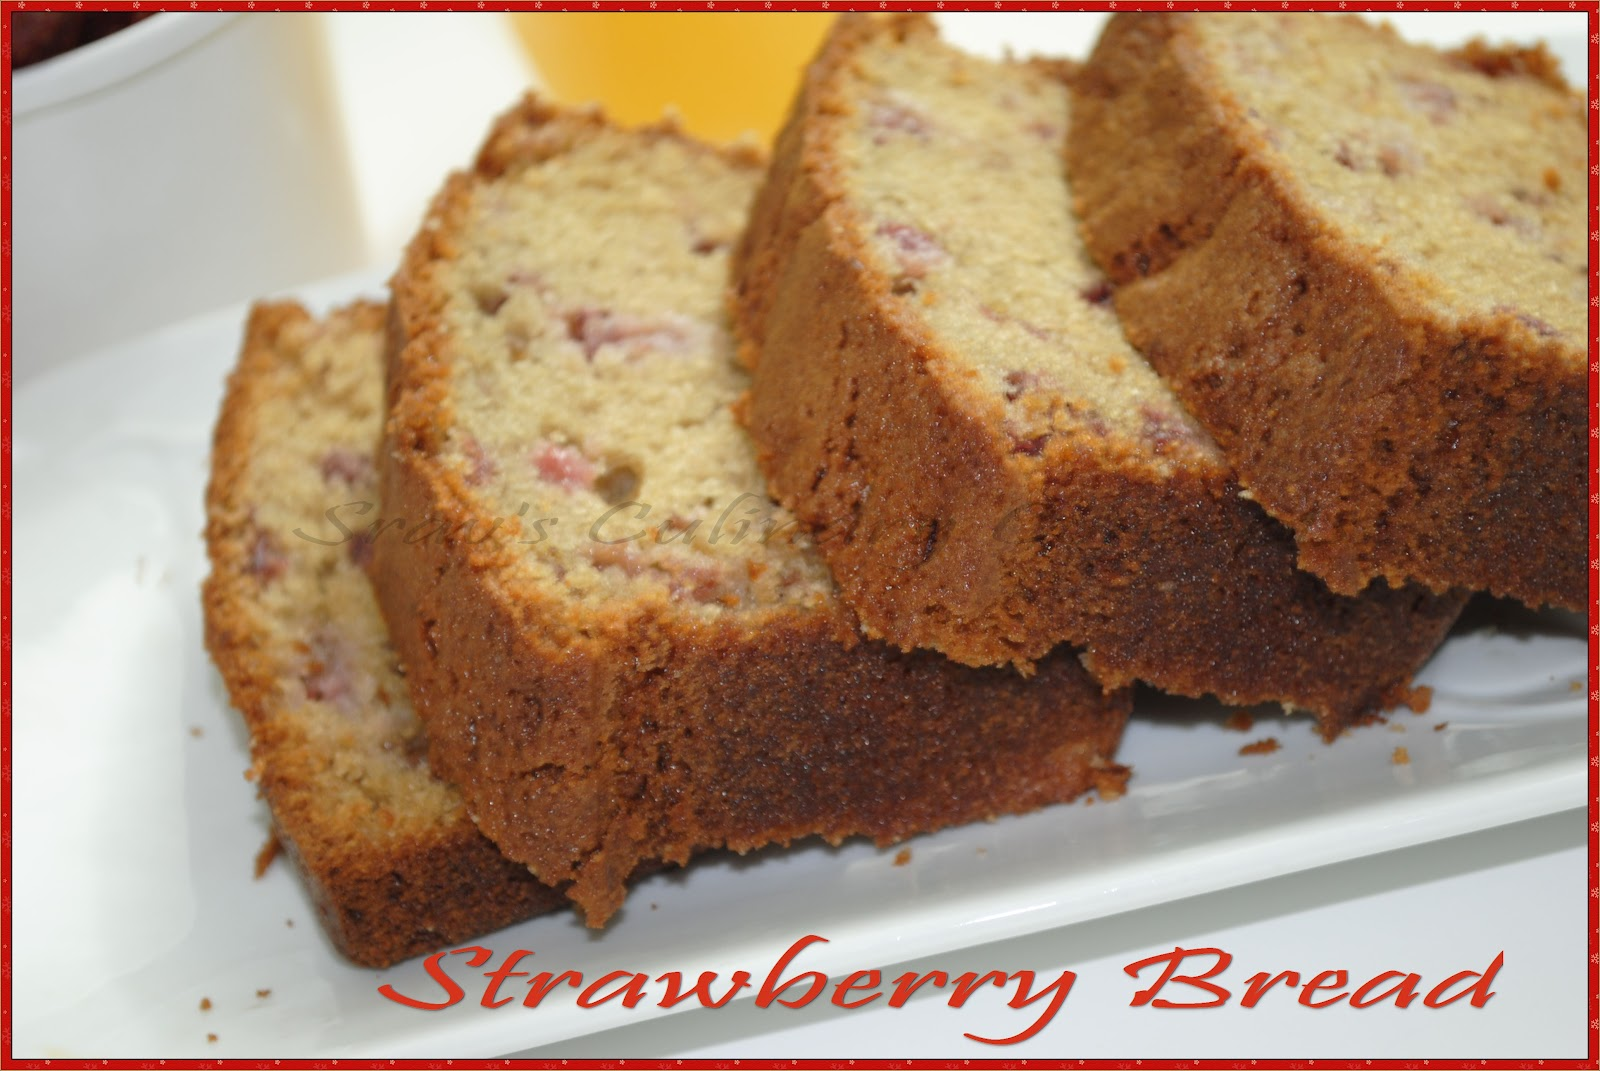 and this healthy Strawberry bread is prepared with Strawberries ...